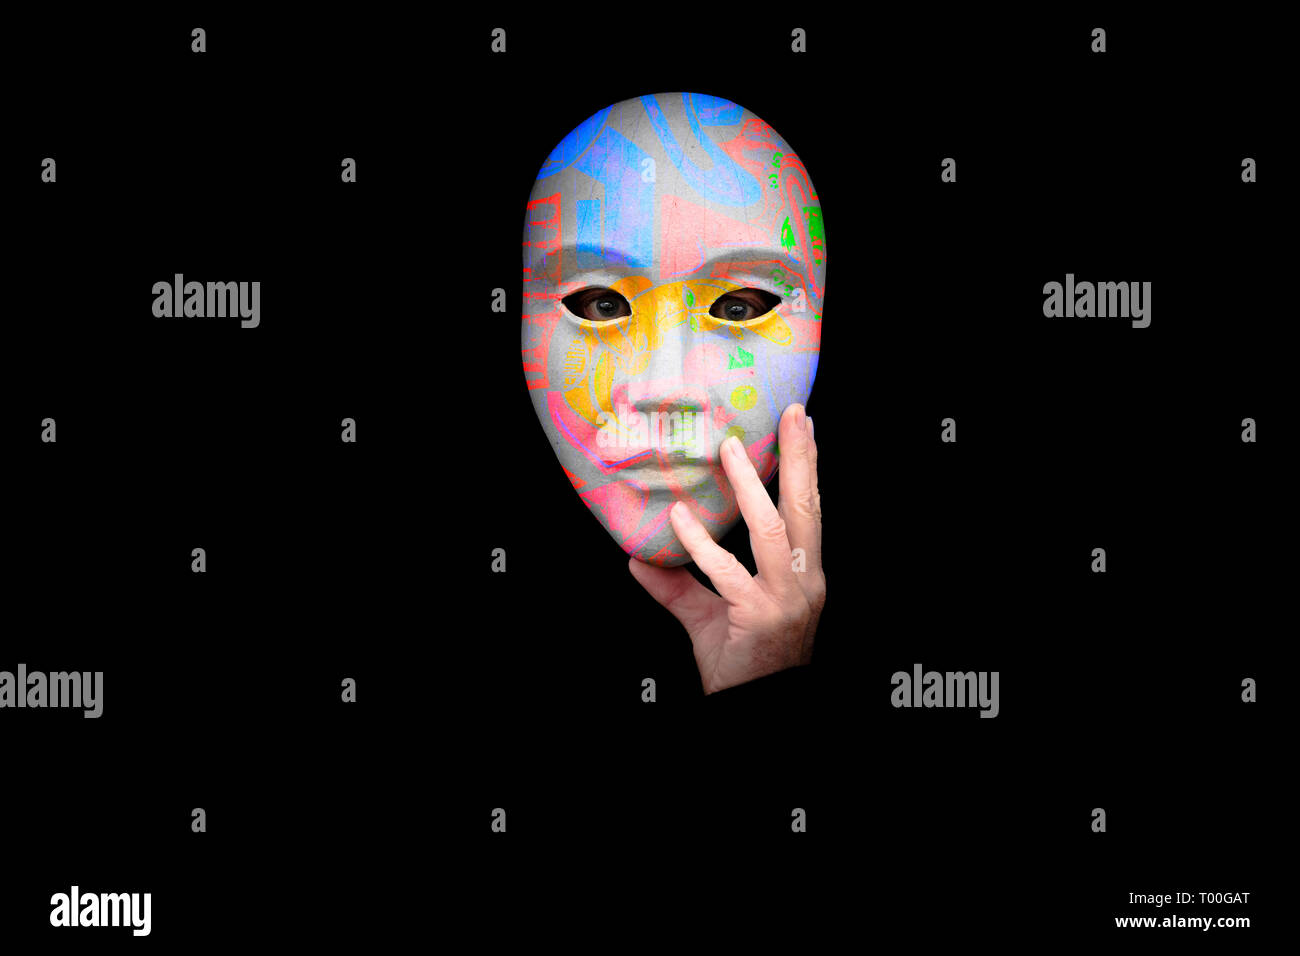 Person with hand to face  in a colourful mask against a black background - Stock Image